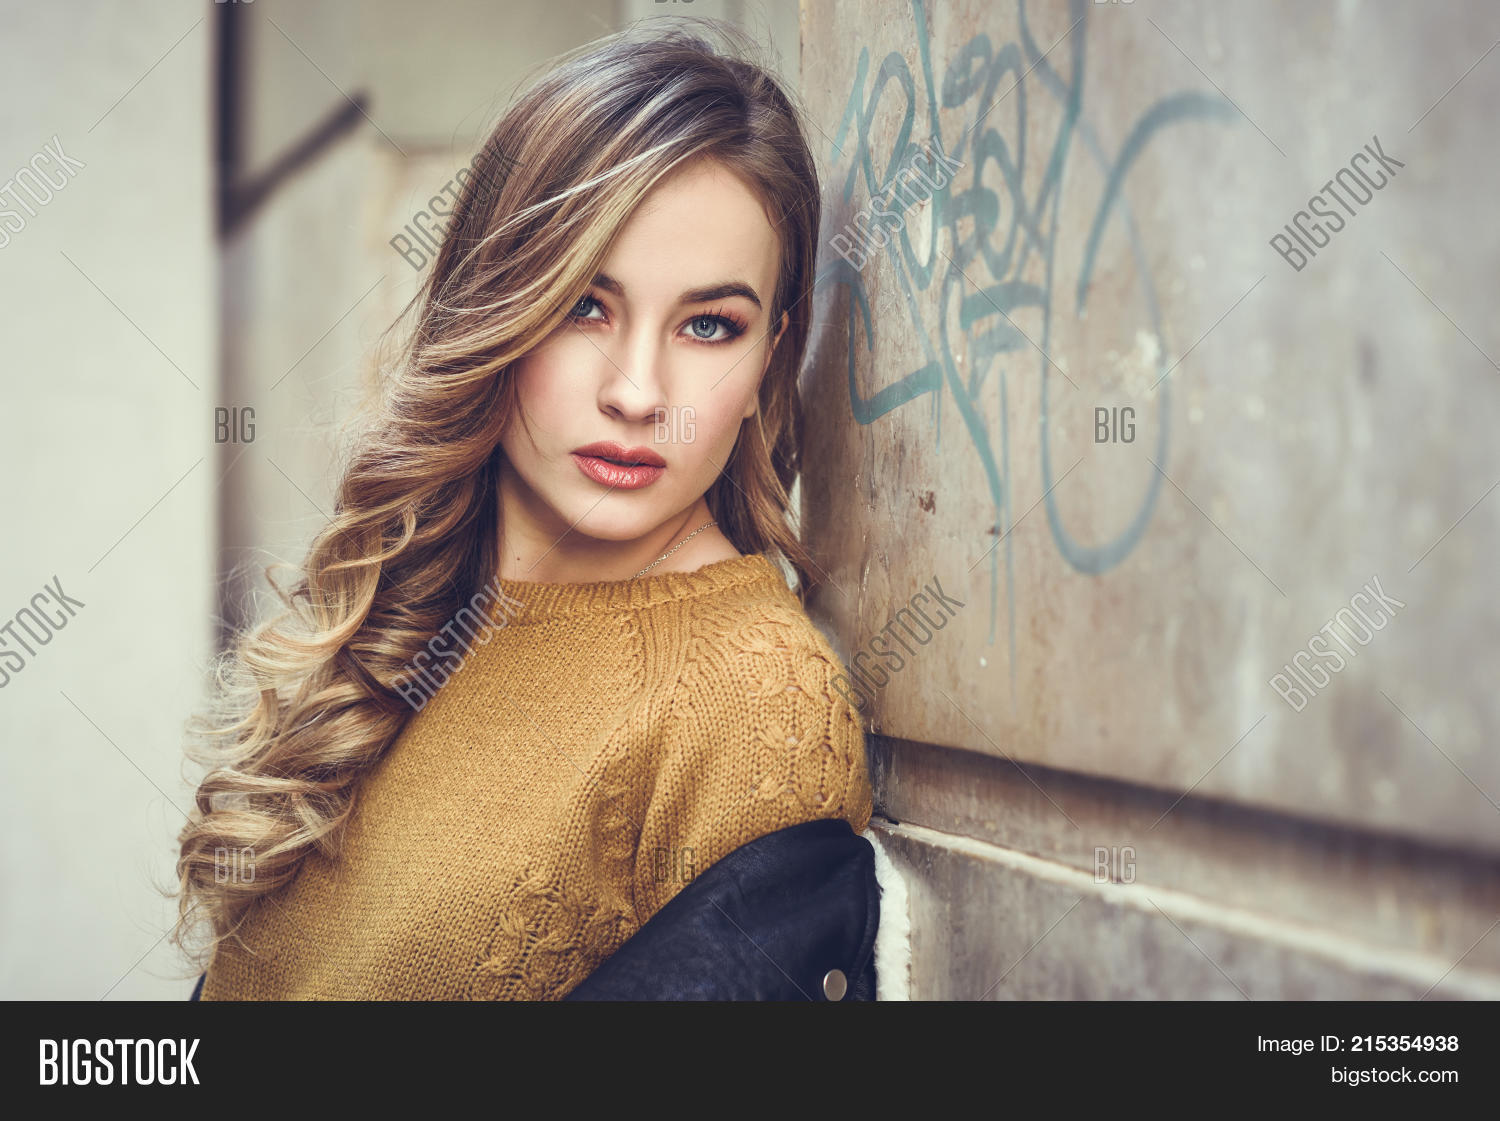 055268ee1 Blonde woman in urban background. Beautiful young girl wearing black  leather jacket and mini skirt standing in the street. Pretty russian female  with long ...